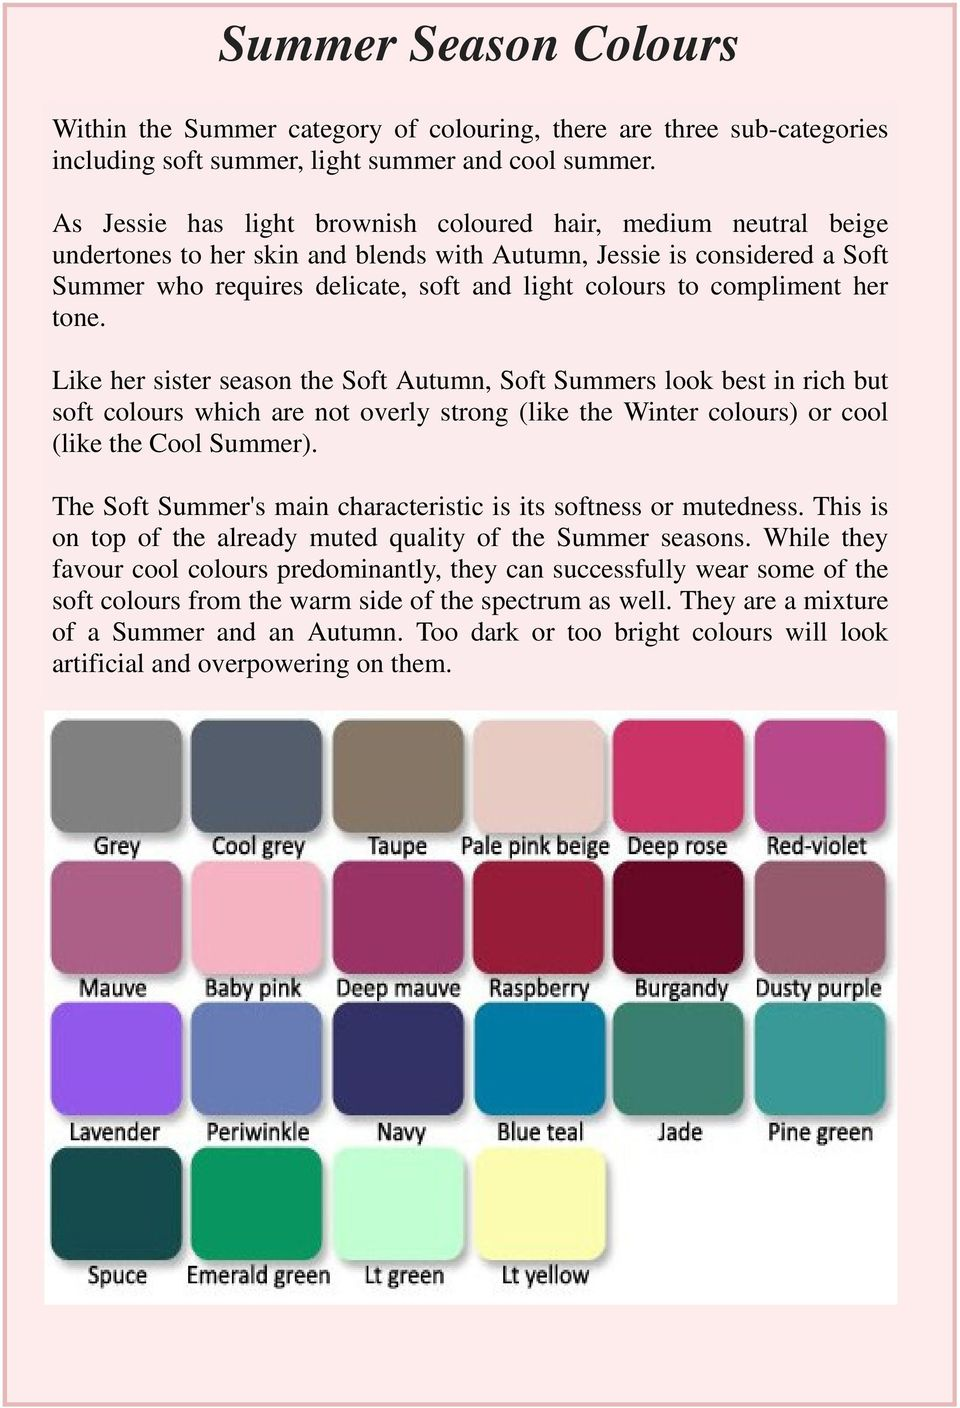 compliment her tone. Like her sister season the Soft Autumn, Soft Summers look best in rich but soft colours which are not overly strong (like the Winter colours) or cool (like the Cool Summer).